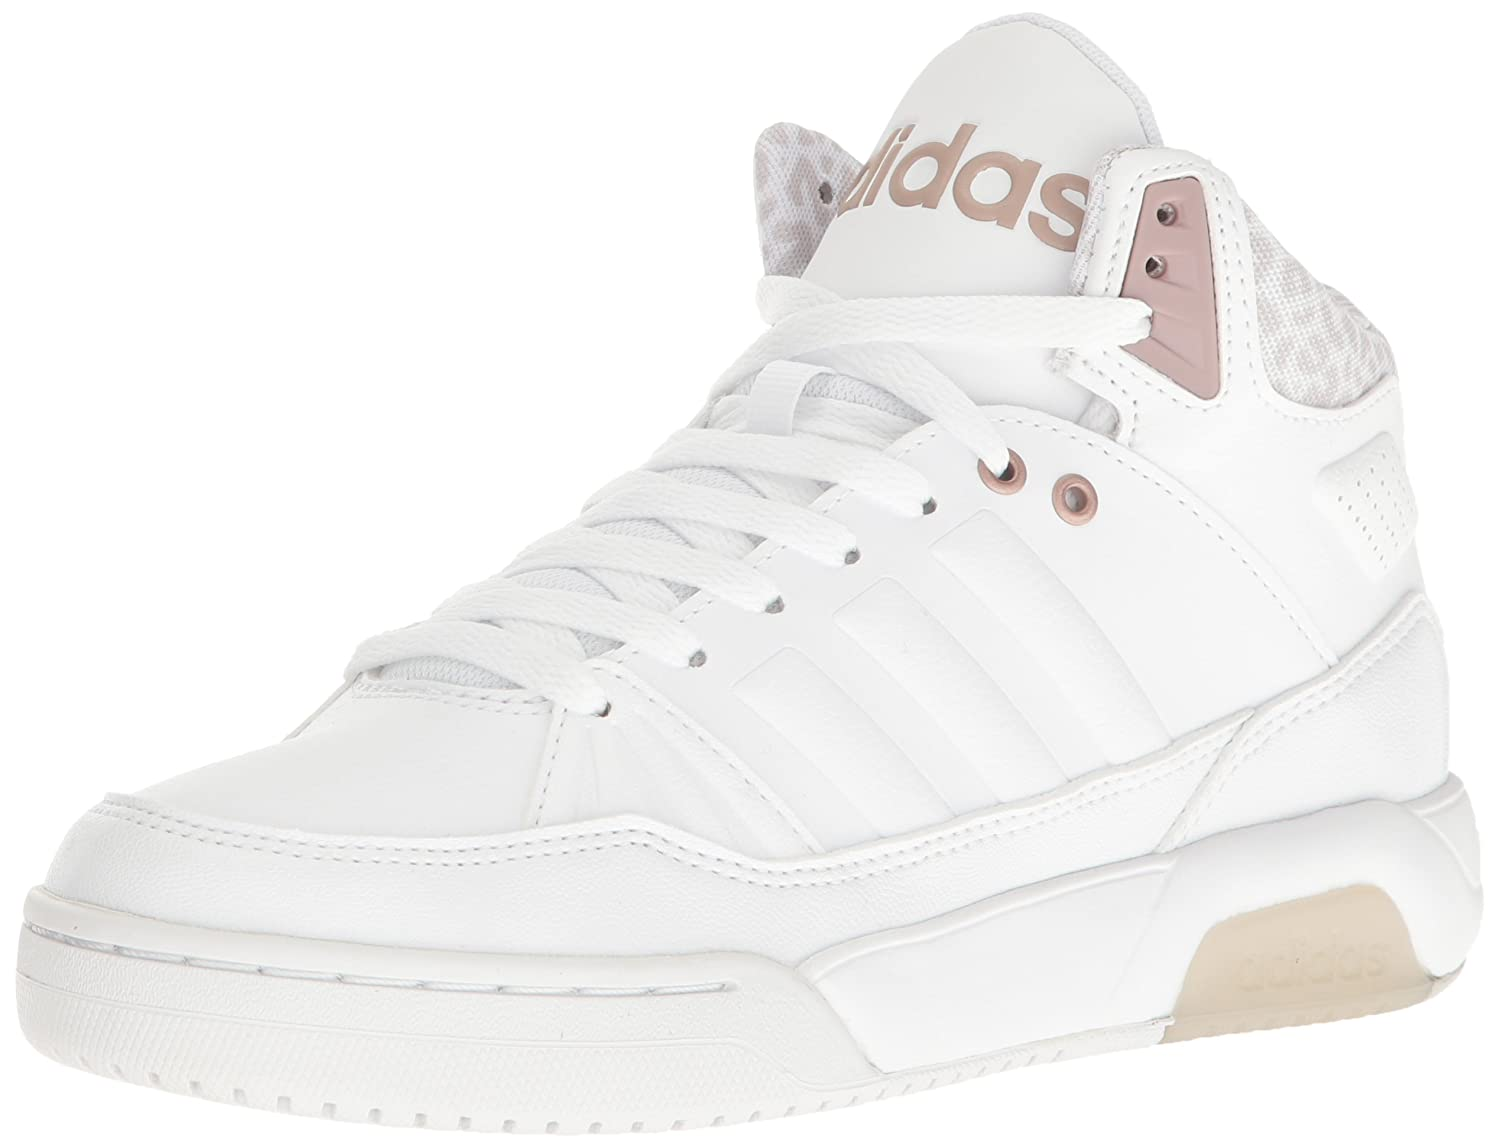 adidas Women's Play9tis Fashion Sneakers B01HSIUPI8 (7 M US)|White/White